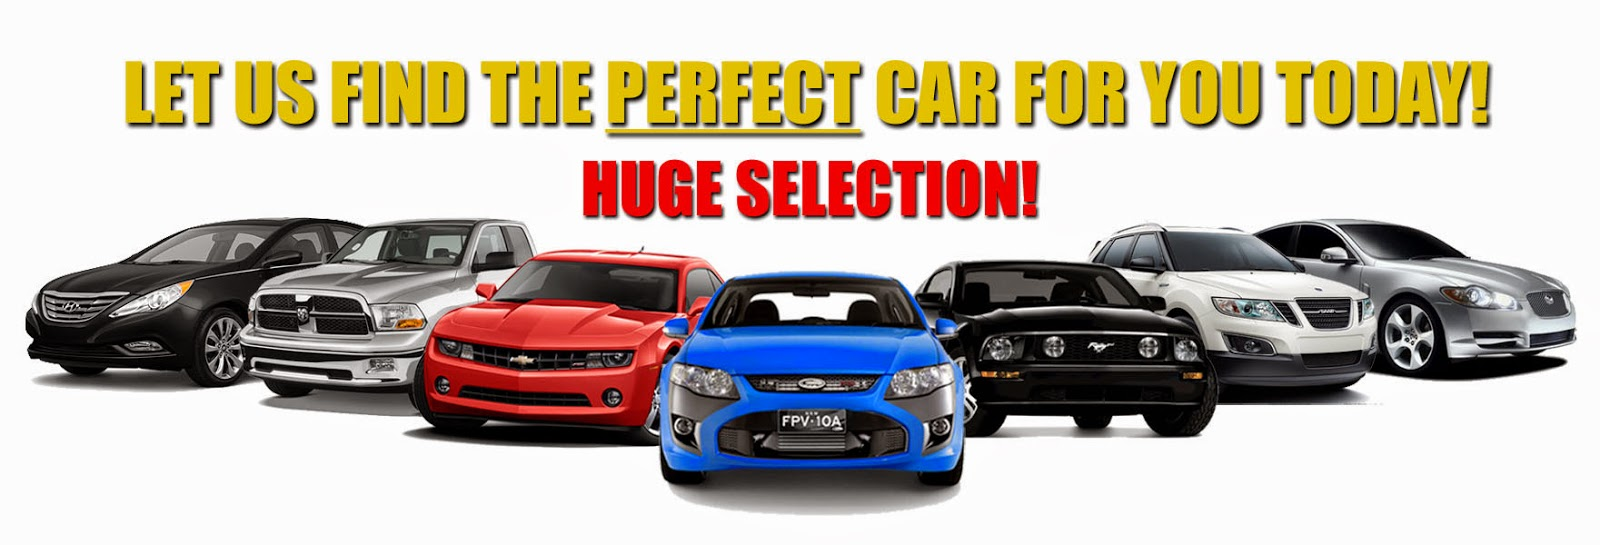 Car Dealer Key Promotion